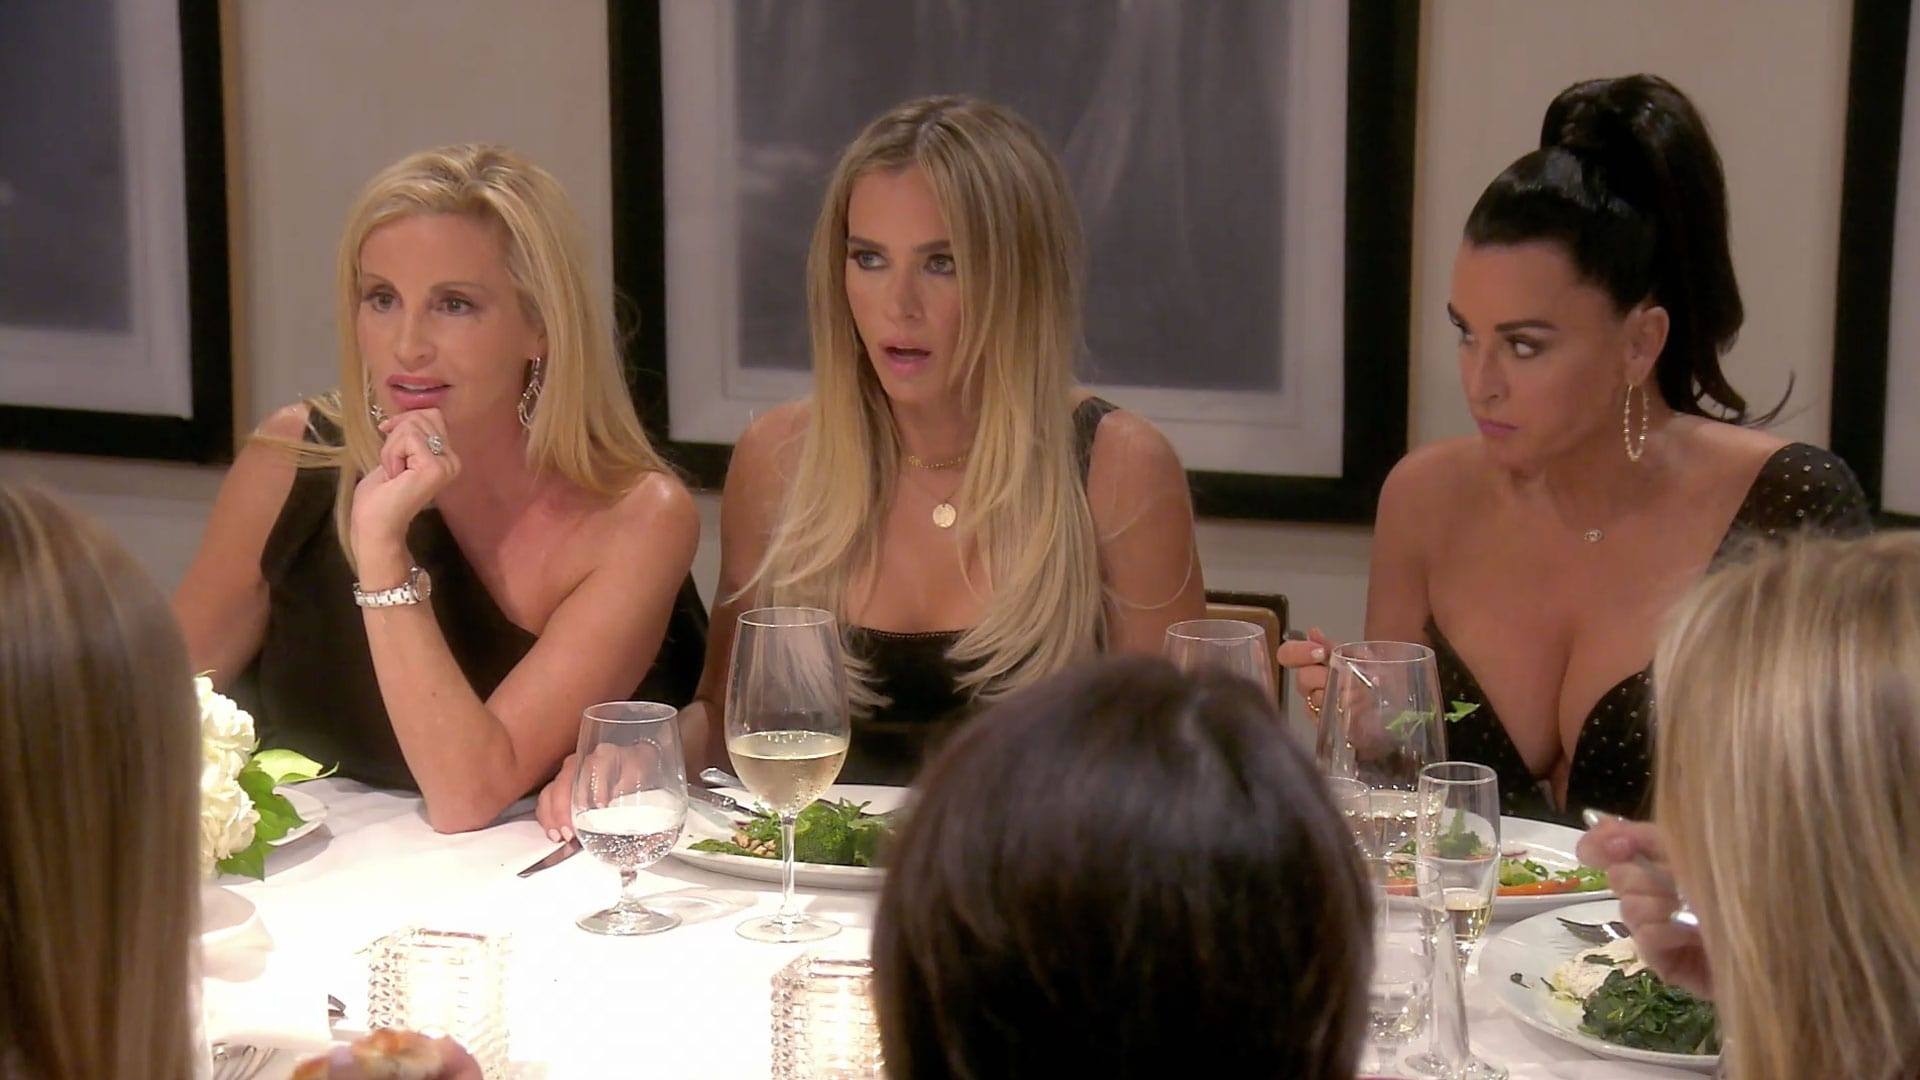 the real housewives of beverly hills season 4 episode 1 videobull